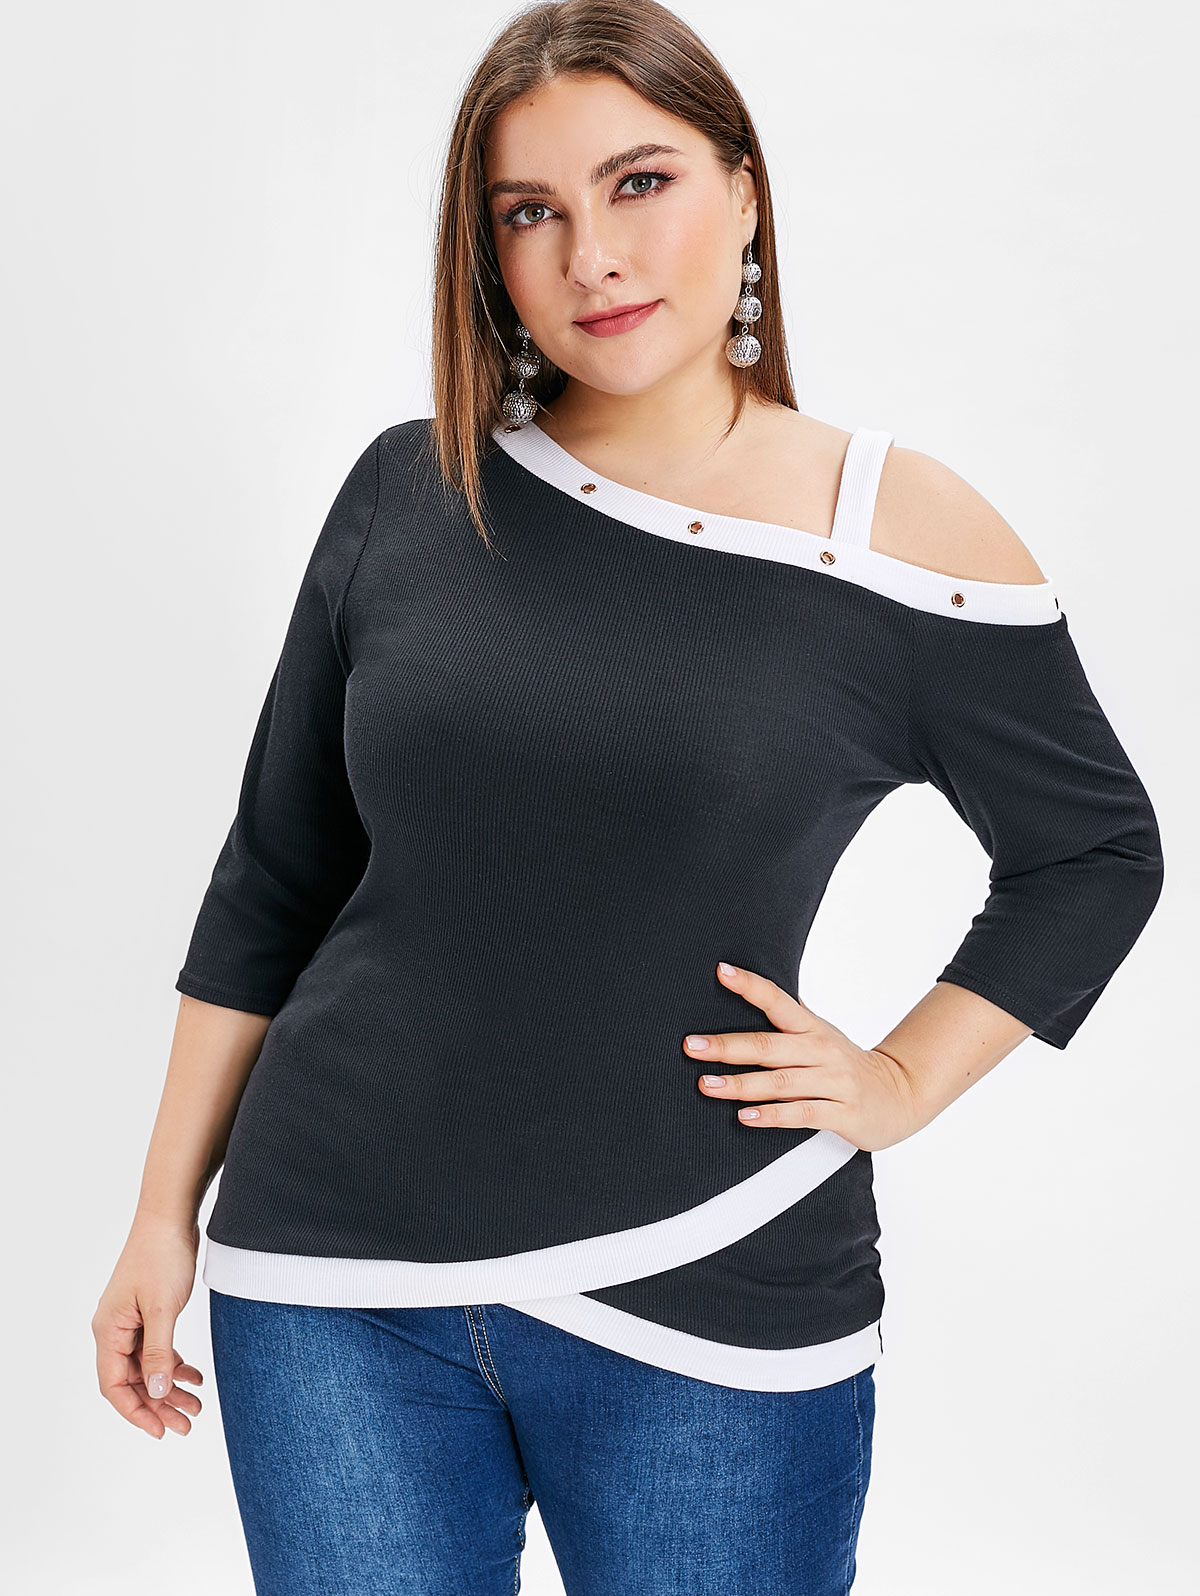 9c1724769b9 Details about L-5XL Plus Size Two Tone Women Cold Shoulder Top Blouse  Casual 3 4 Sleeve Tee